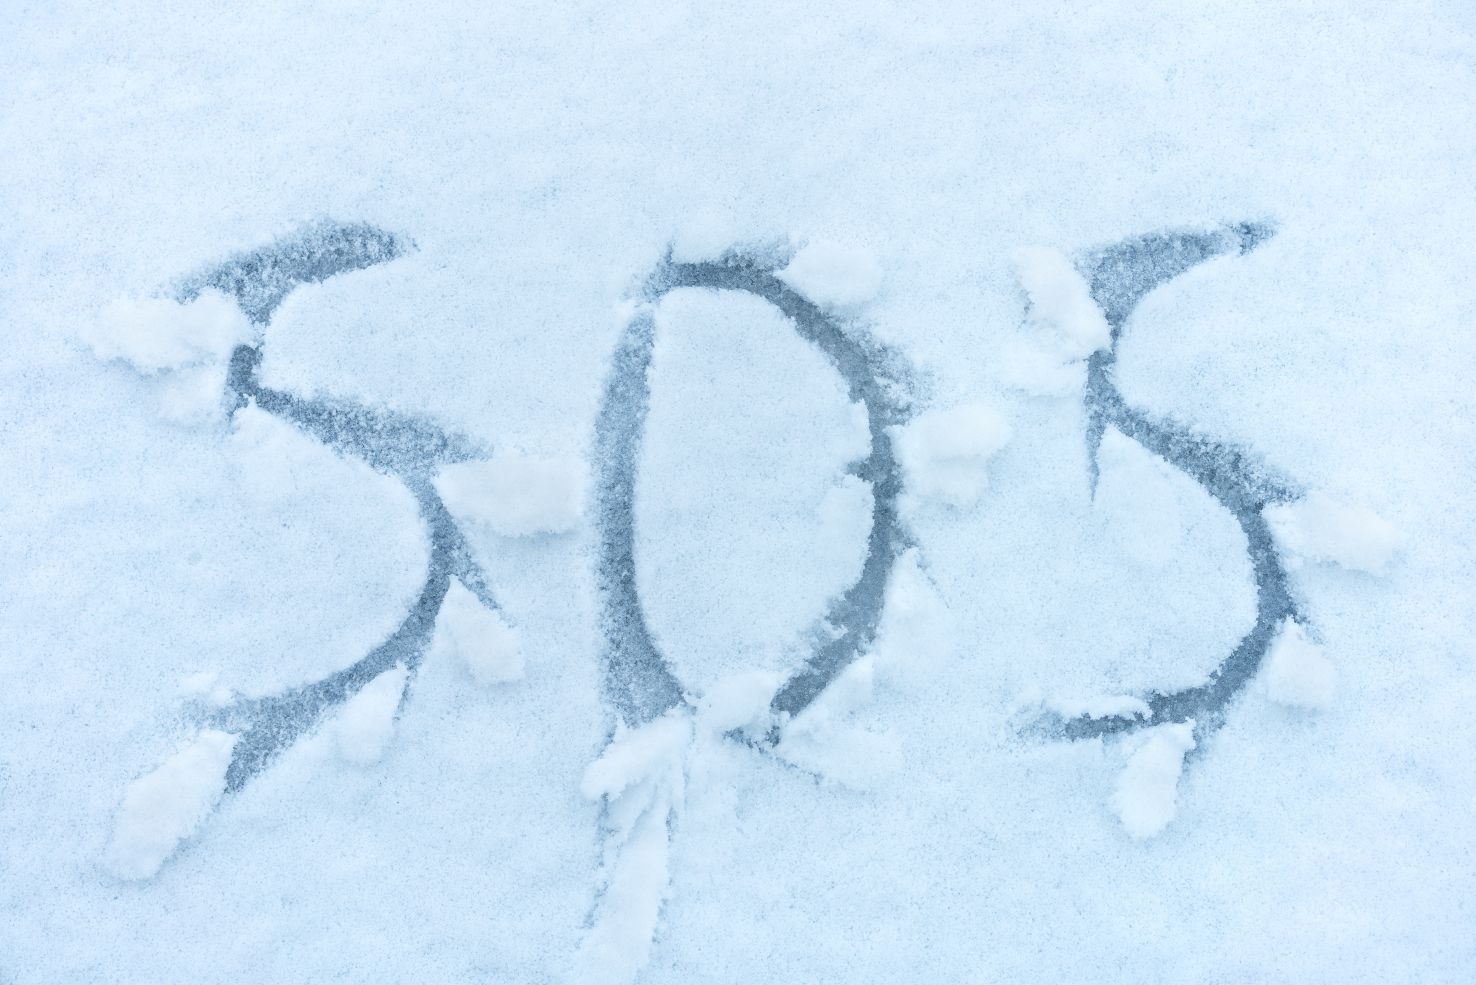 SOS - call for help signal written in the snow